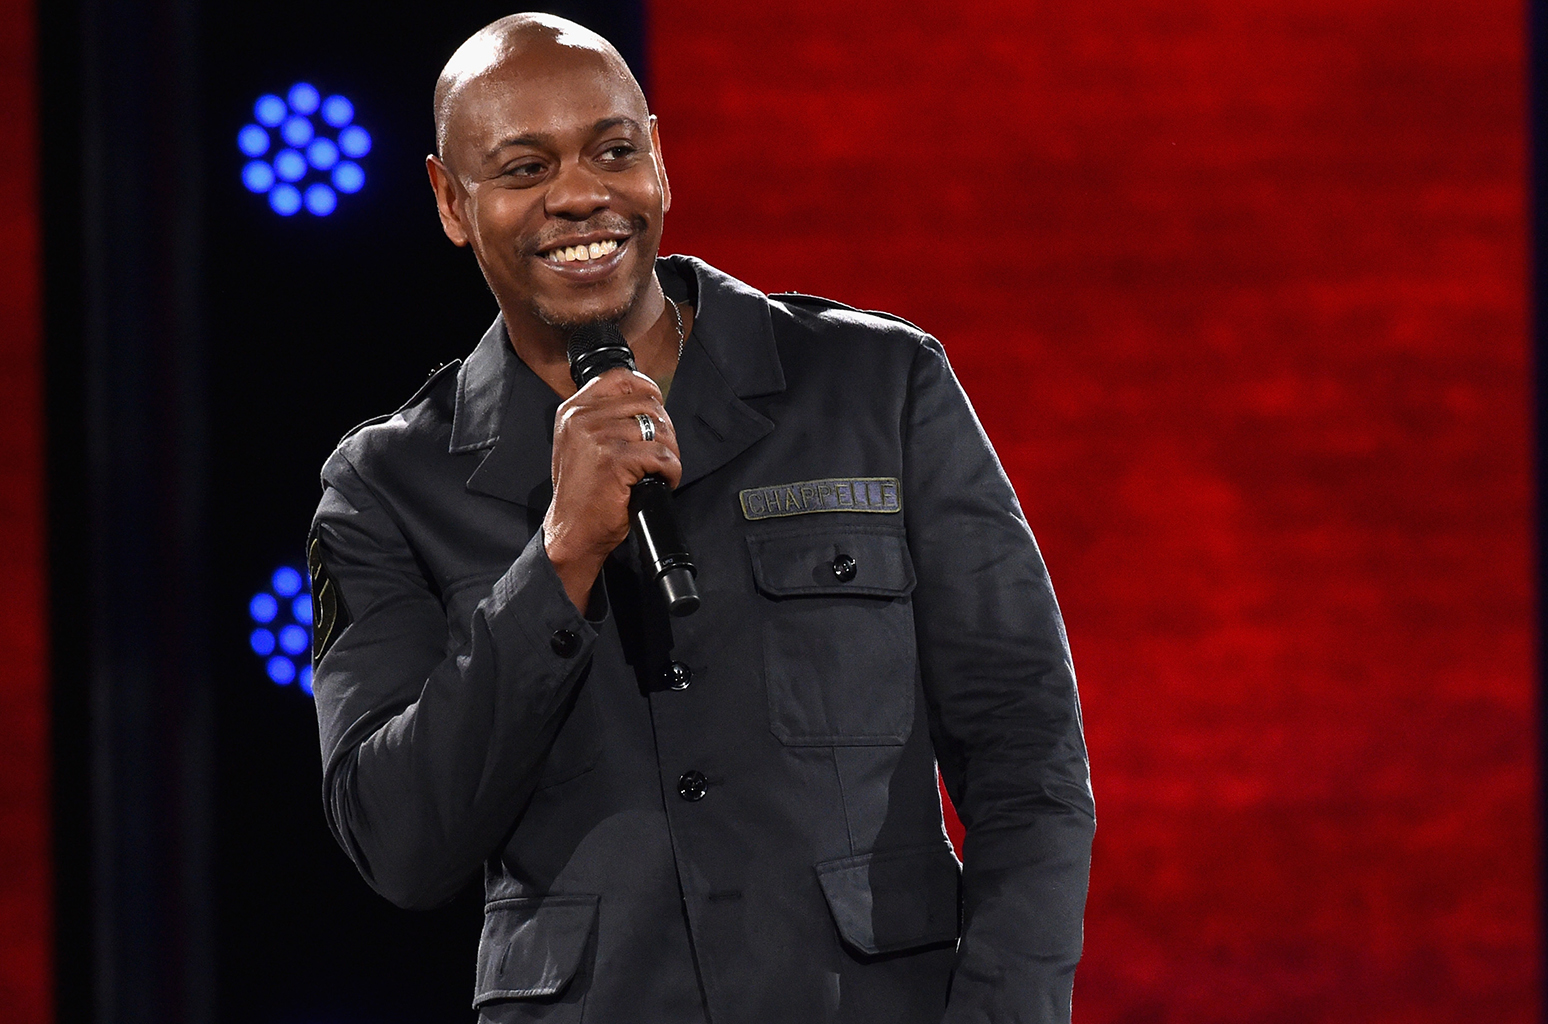 Dave Chappelle's back in new Netflix special trailer